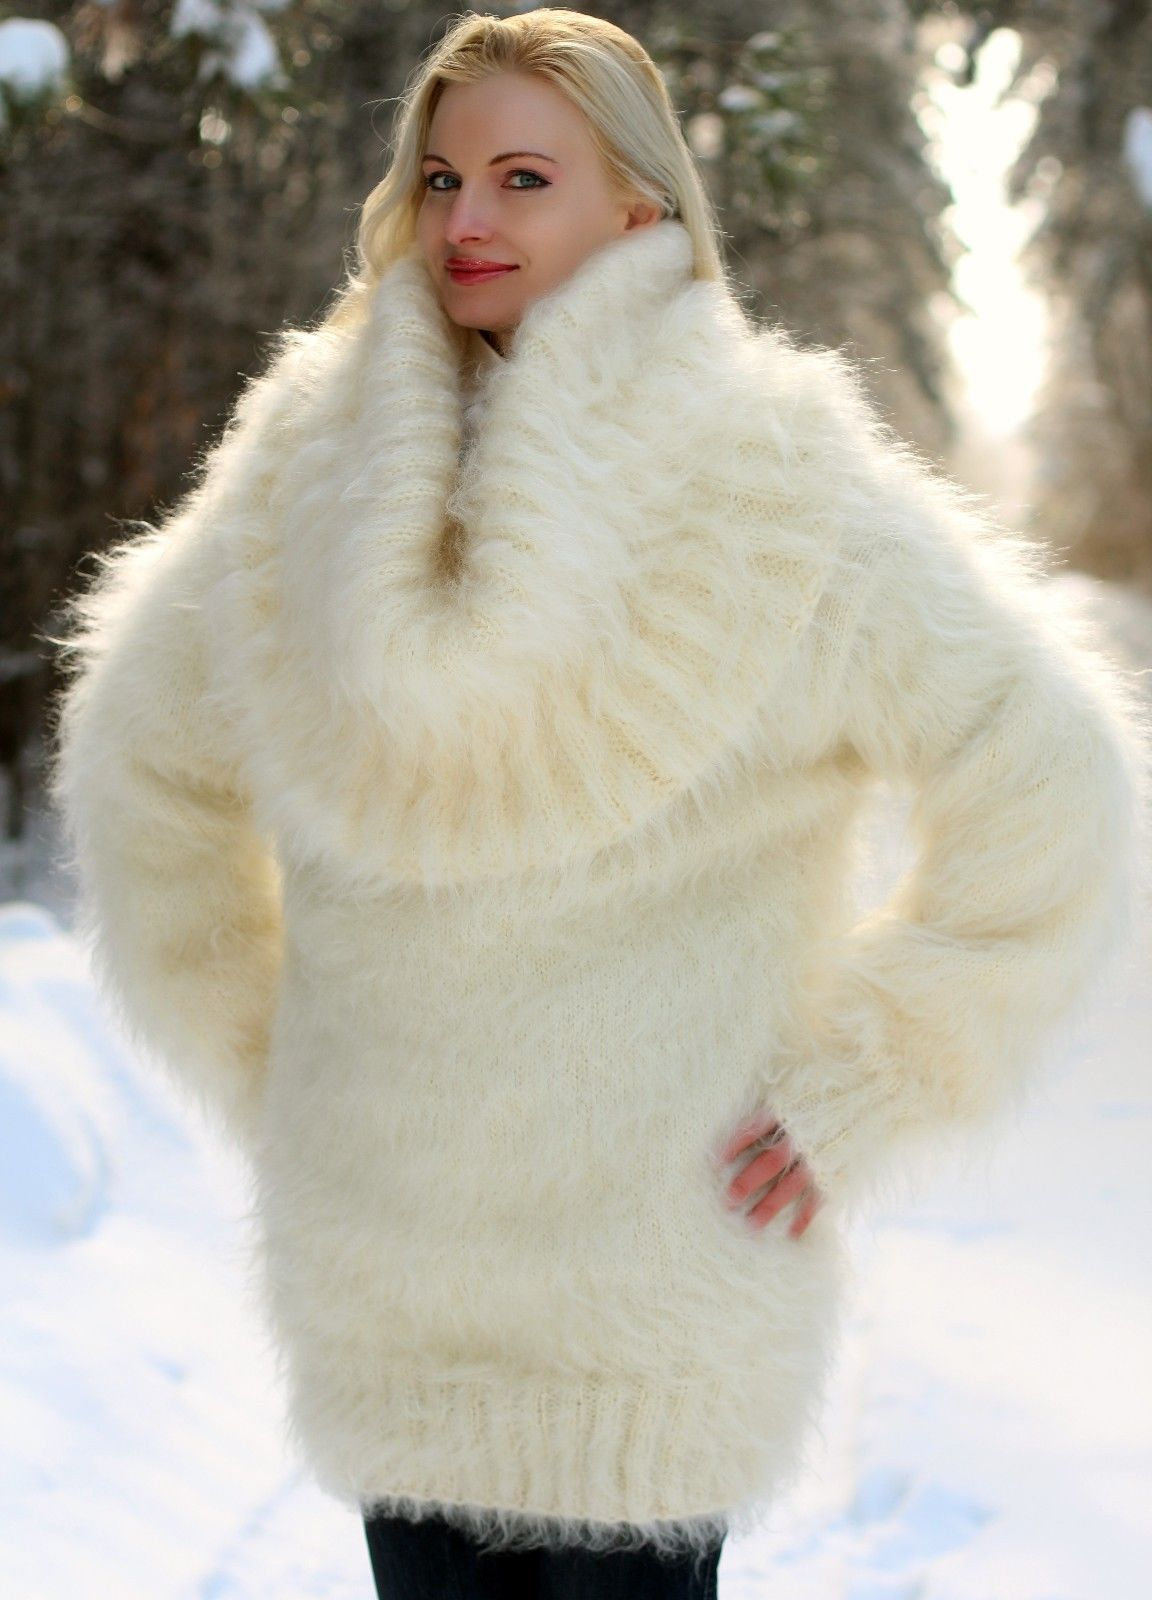 Ivory Hand Knitted Mohair Sweater Fuzzy Cowlneck Handmade Dress ...